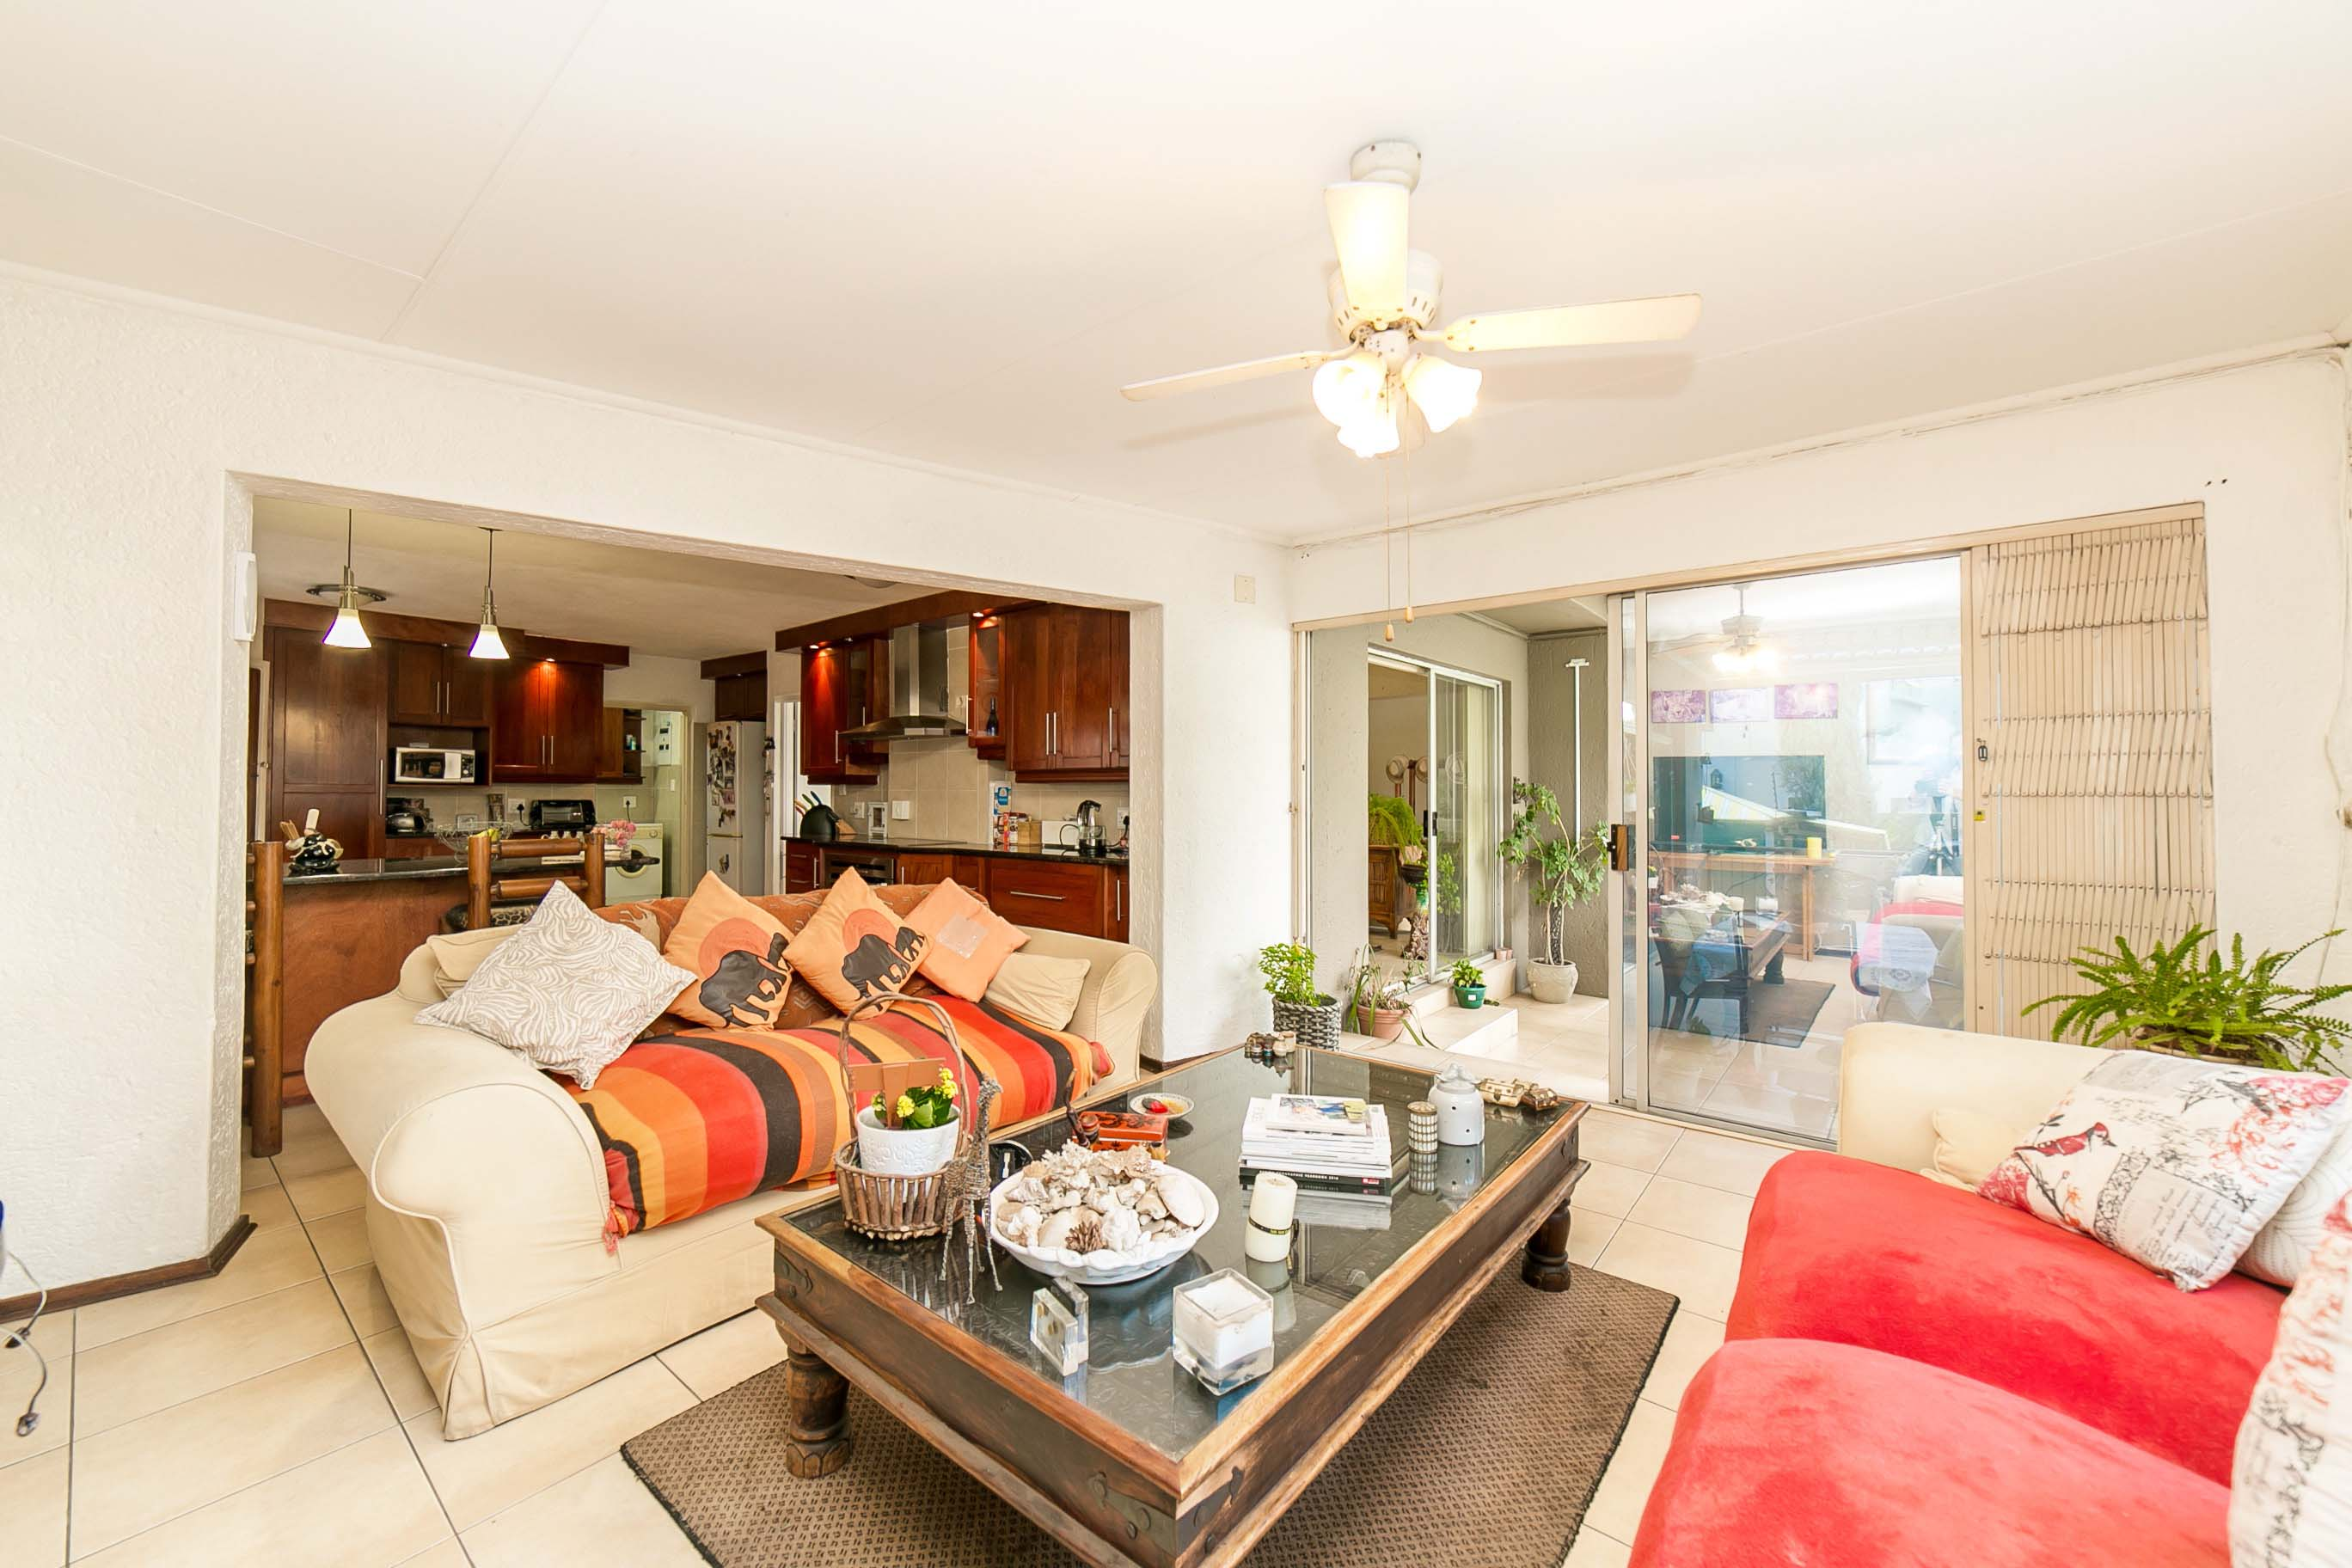 4 Bedroom House for sale in Lonehill ENT0082001 : photo#9